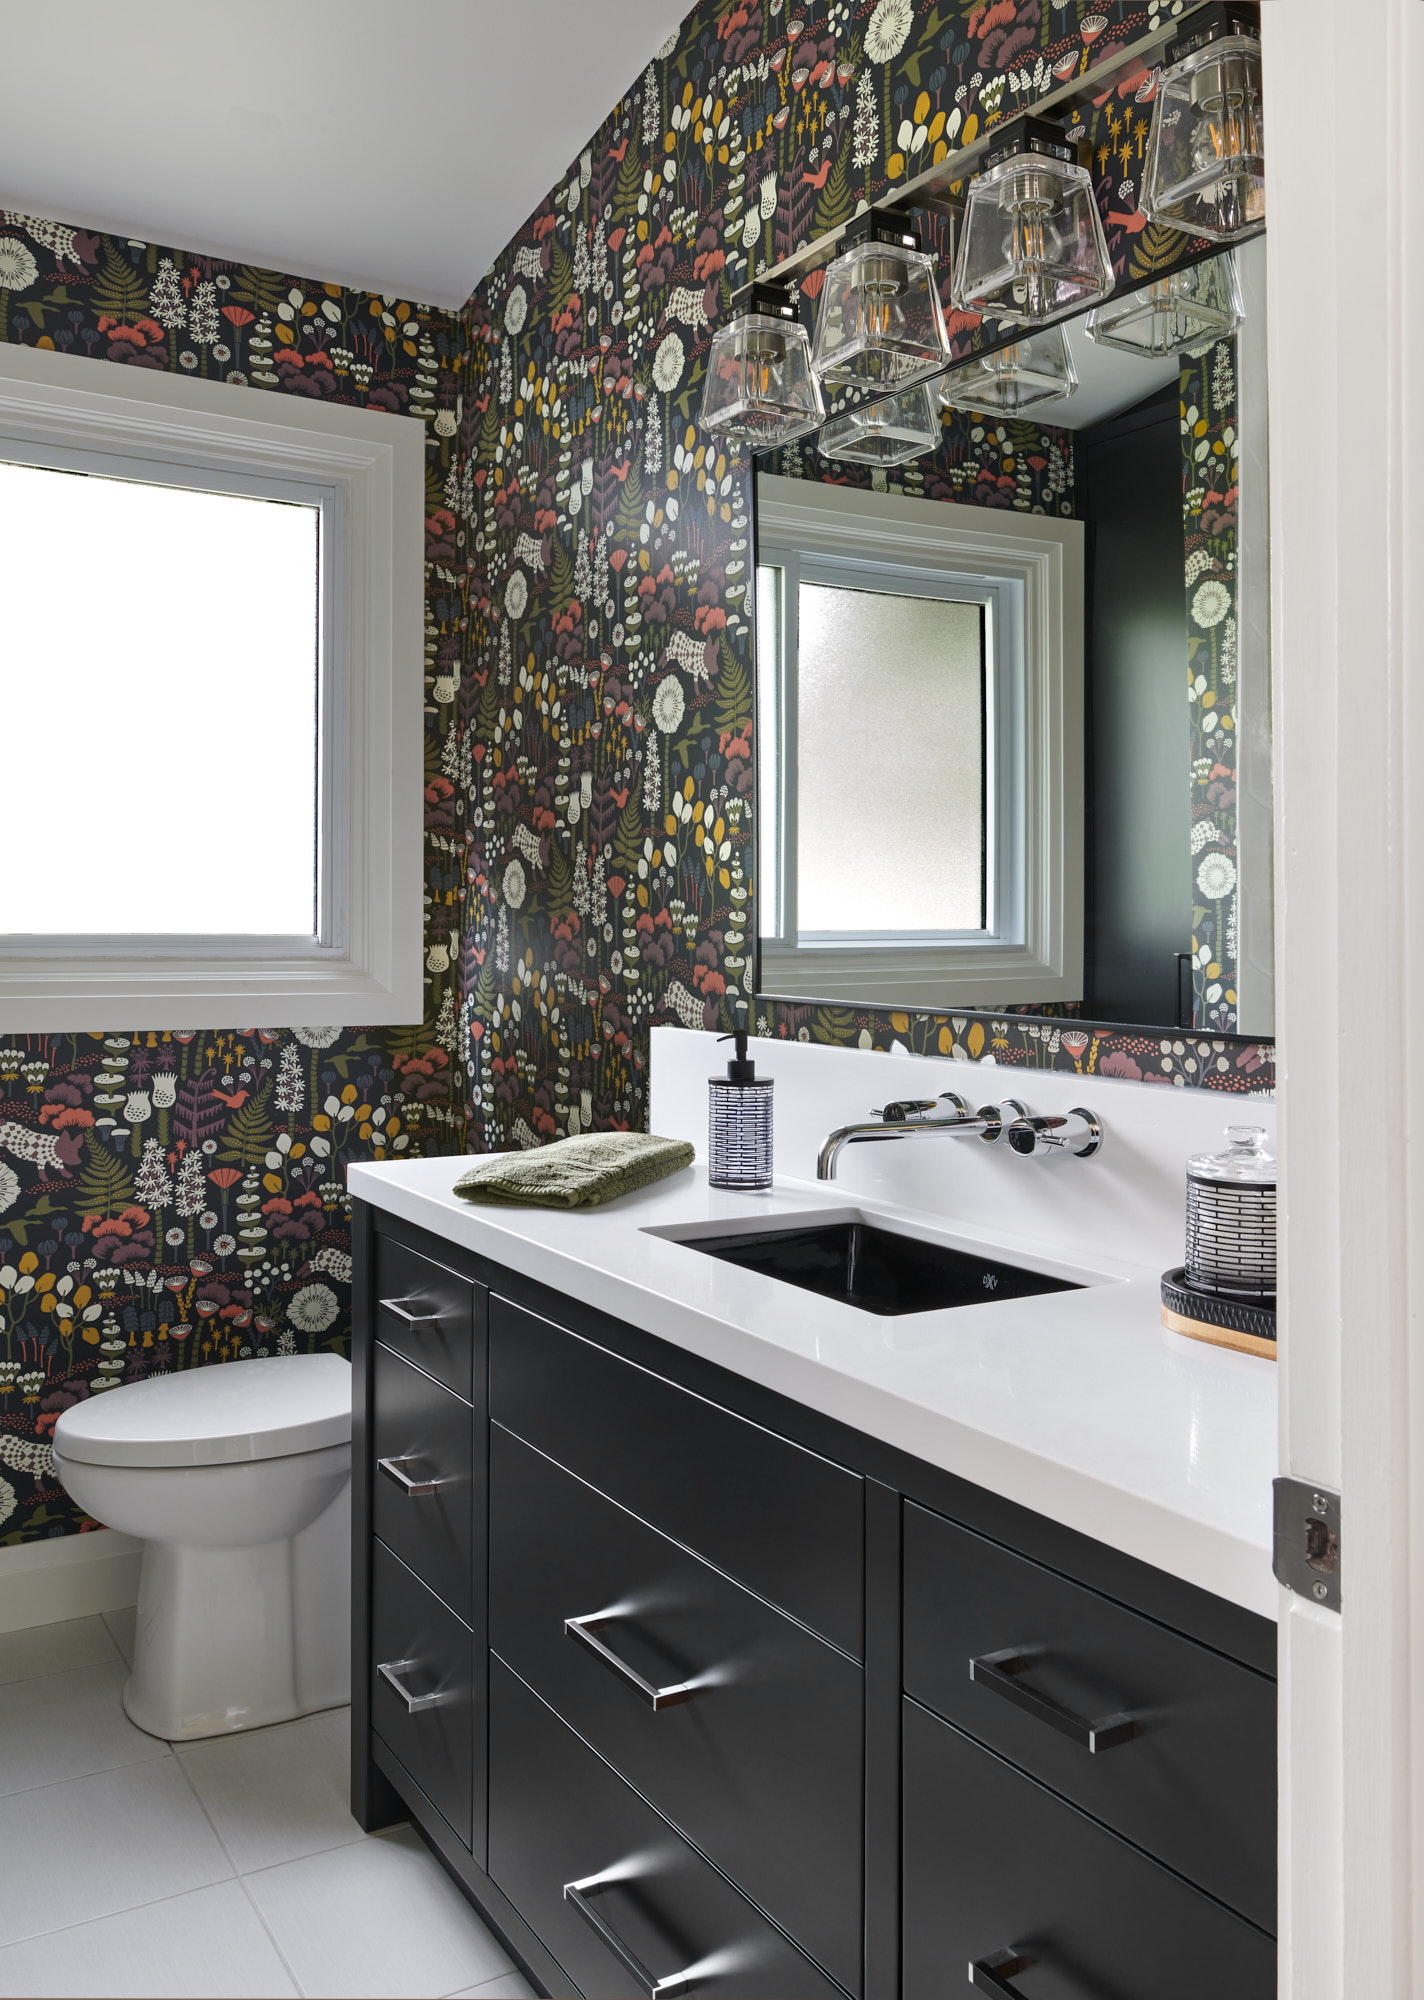 Copy of Bold_Bathroom_renovation_with_colorful_wallpaper